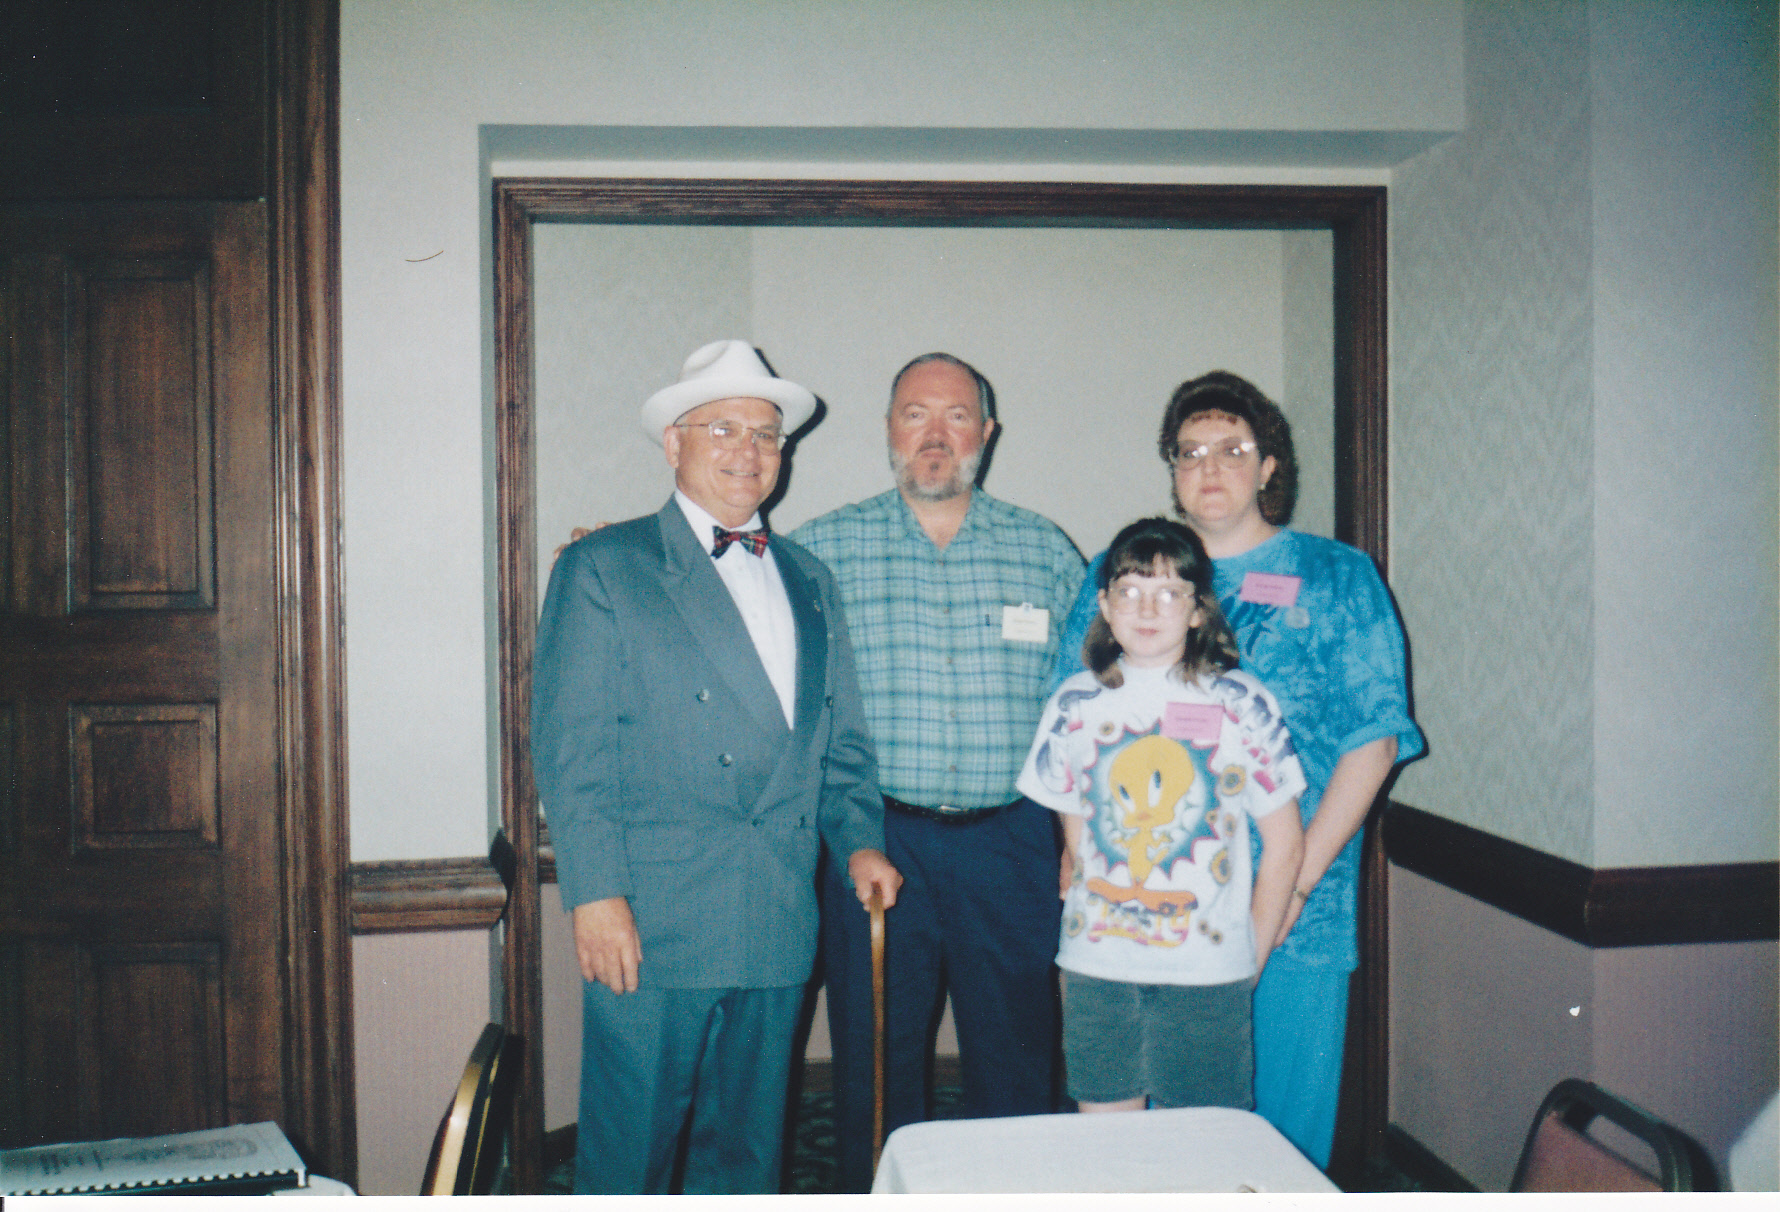 1997 OFHS meeting in Independence, MO (Harry Truman with Floyd, Karen, and Kambli